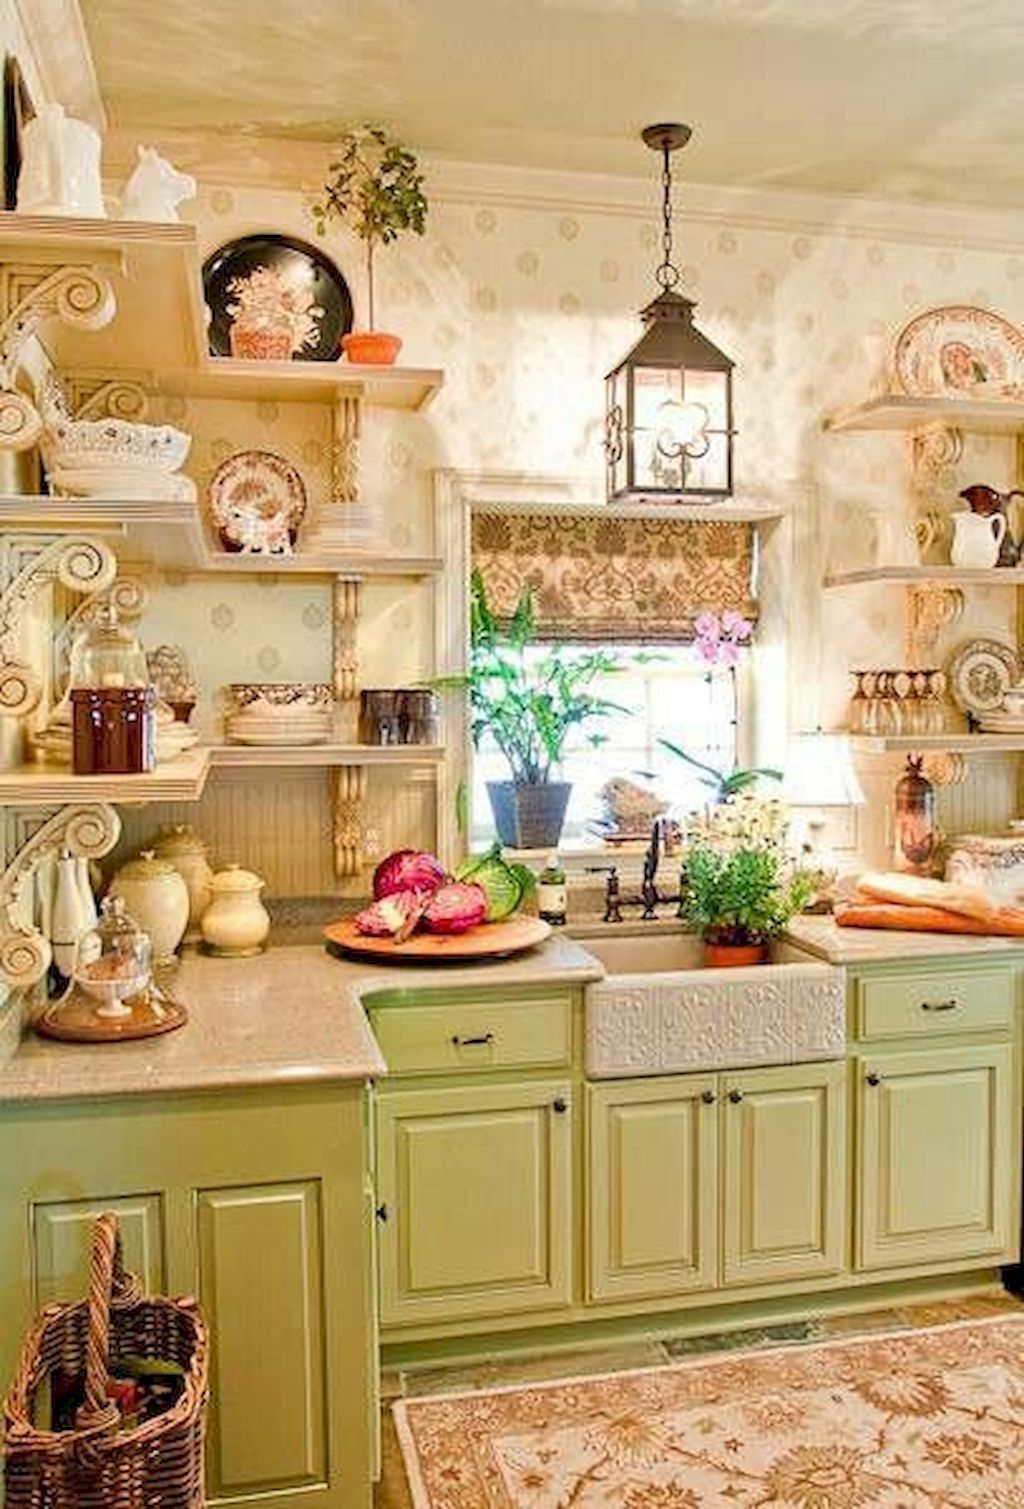 80 beautiful french country kitchen design ideas country kitchen graceful lines intricate woodwork and rich fabrics are characteristic of classic french design solutioingenieria Image collections